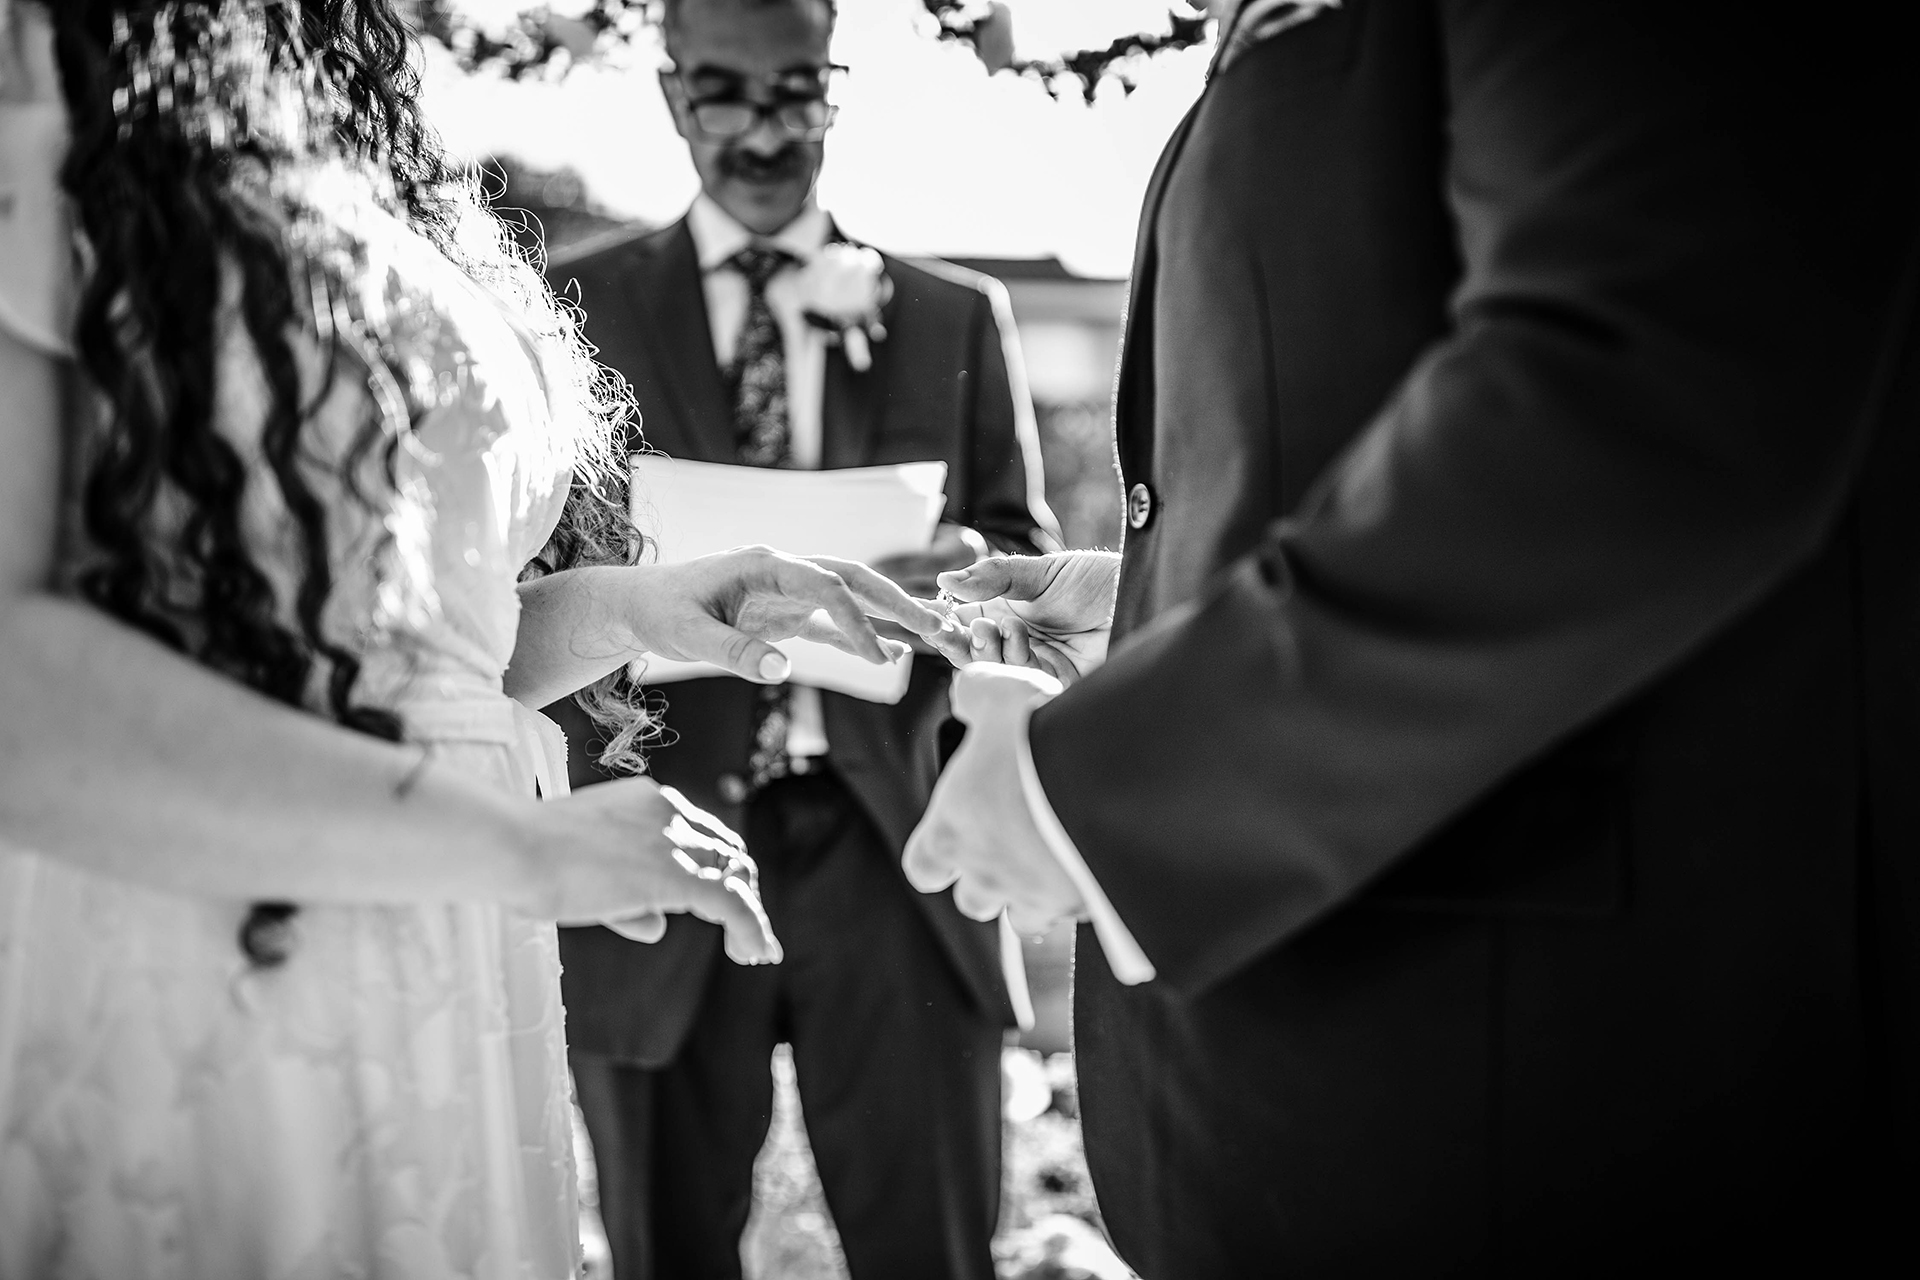 Northern California Elopement Ceremony Photo | The groom's father, serving as officiant, directs the couple to exchange rings